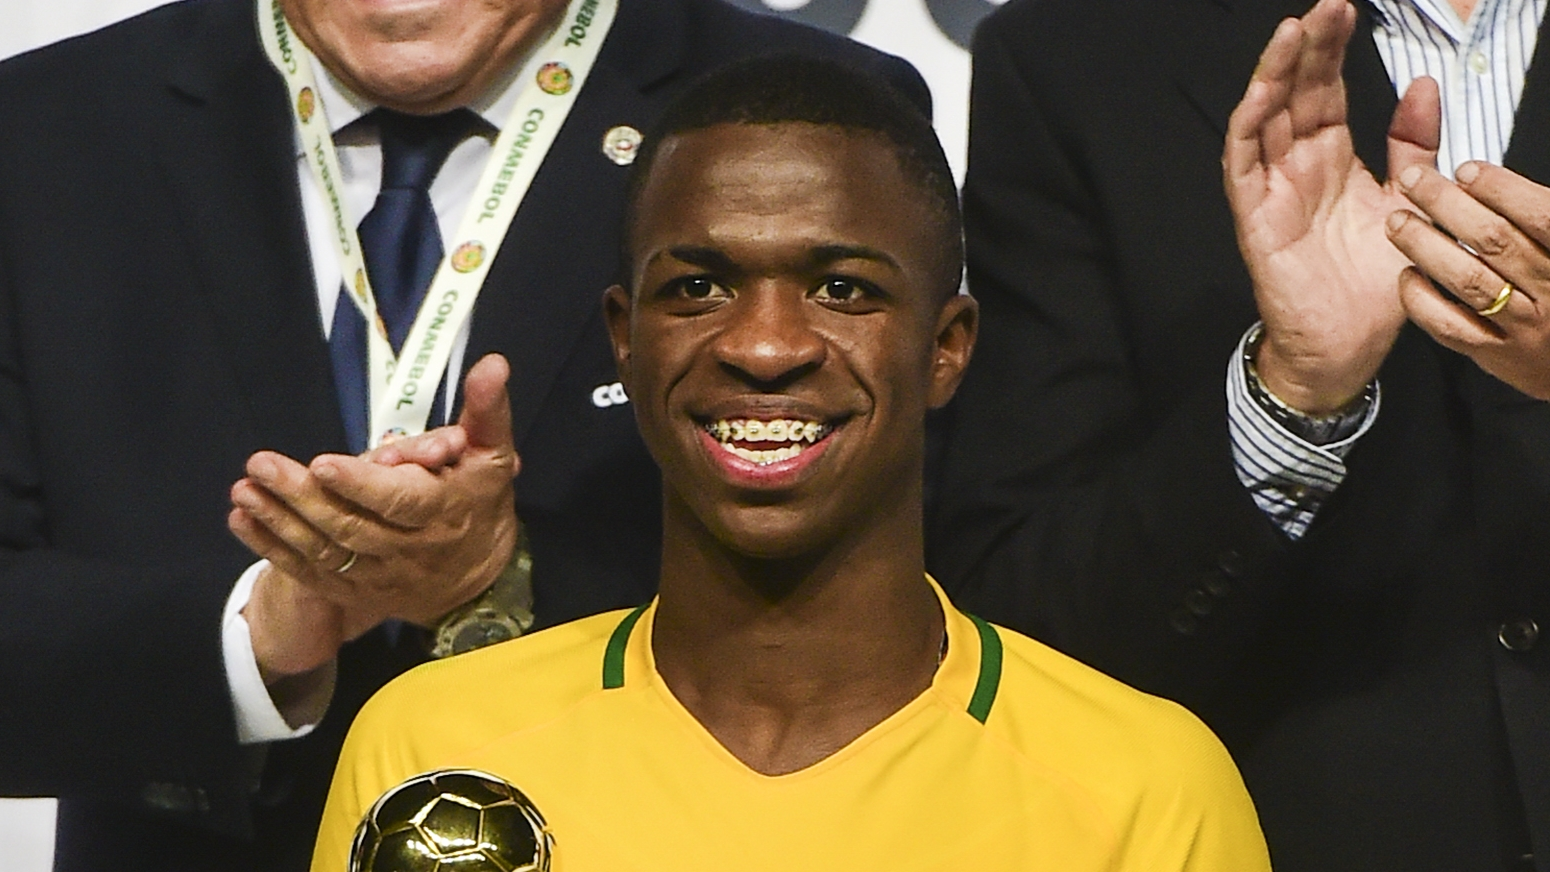 Vinicius Jr to miss Federation Internationale de Football Association U-17 World Cup